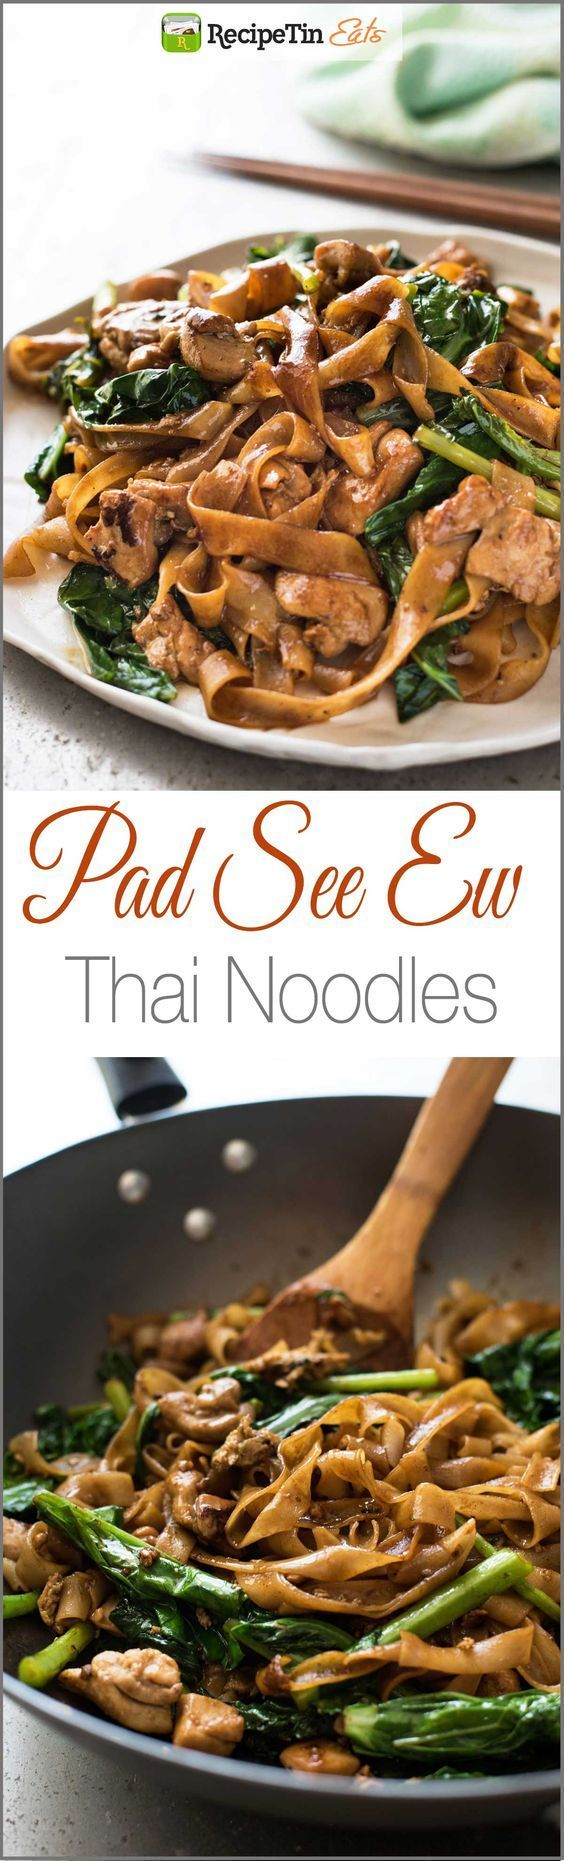 Pad See Ew - A real restaurant quality Thai Stir Fried Noodles recipe, it's easy and fast!